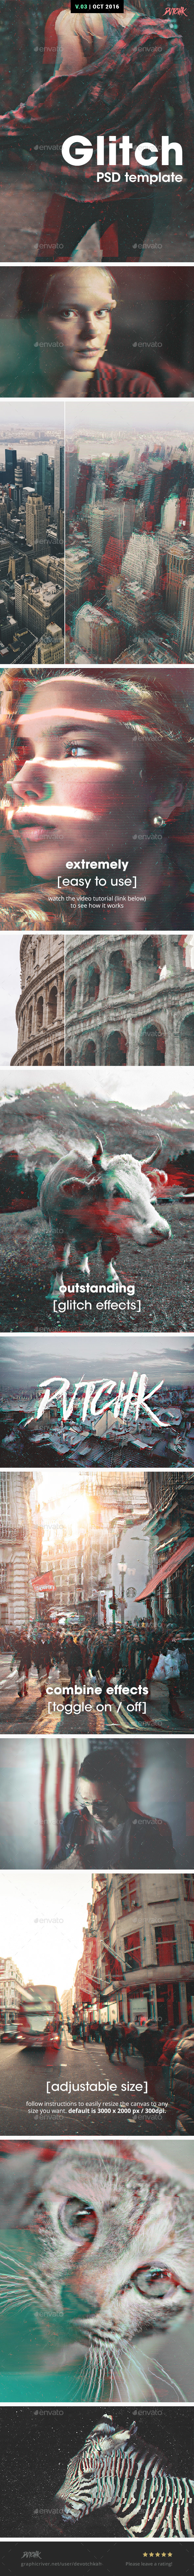 Glitch Photoshop Photo Template Free Download #1 free download Glitch Photoshop Photo Template Free Download #1 nulled Glitch Photoshop Photo Template Free Download #1